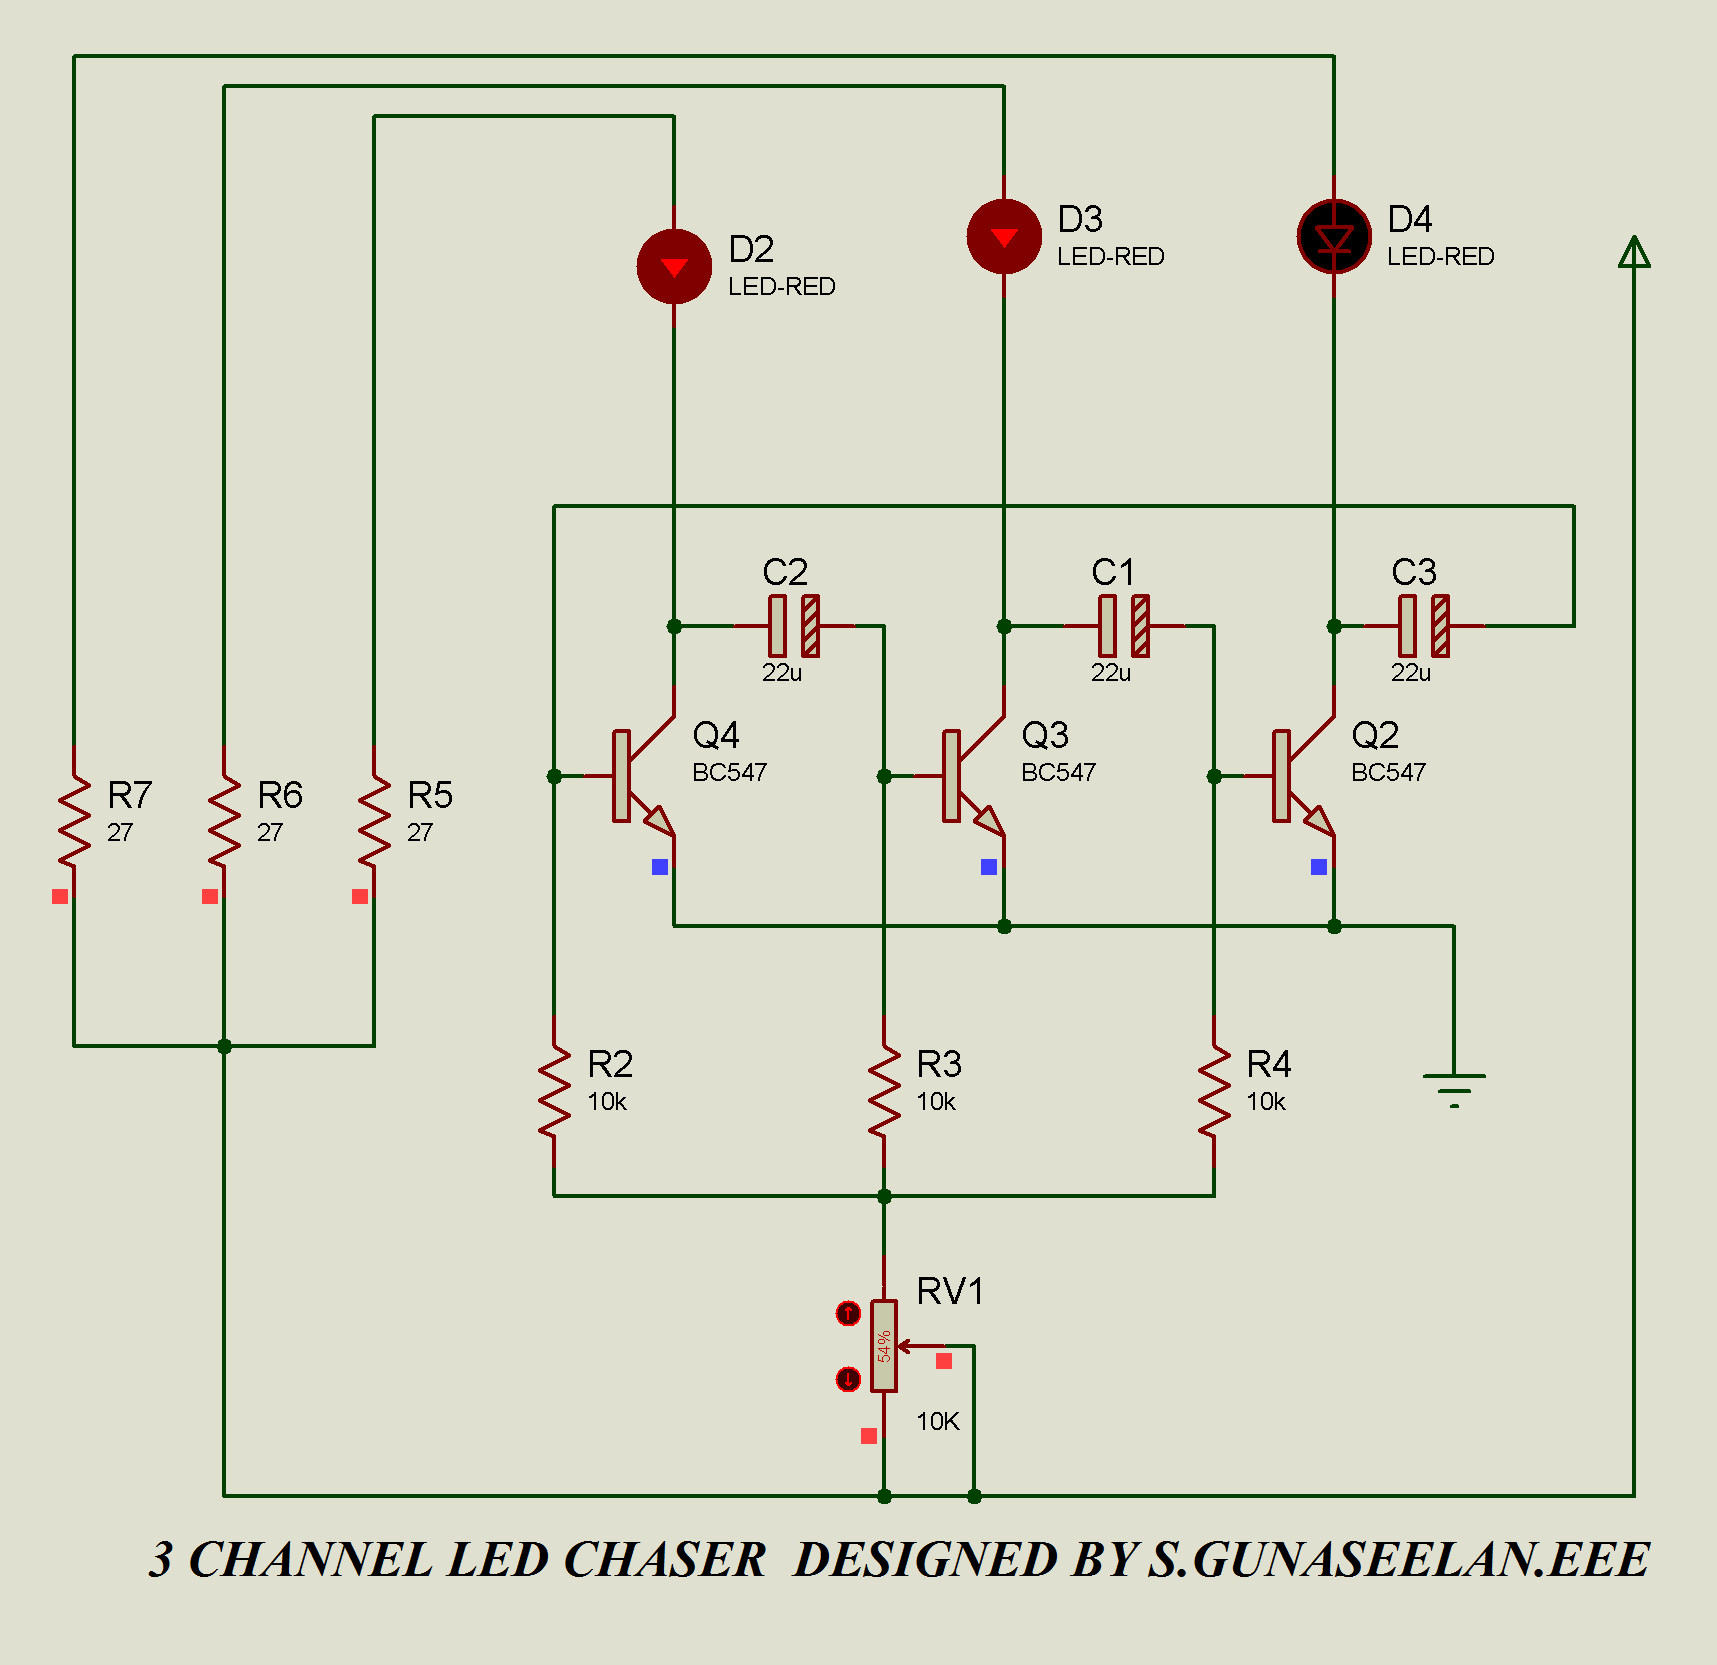 Gunacircuits Relay Circuit Using Bc547 That Looks Too Good To Be True However The Following Diagram Will Simply Prove Its Really Possible Create A Legal Led Chaser